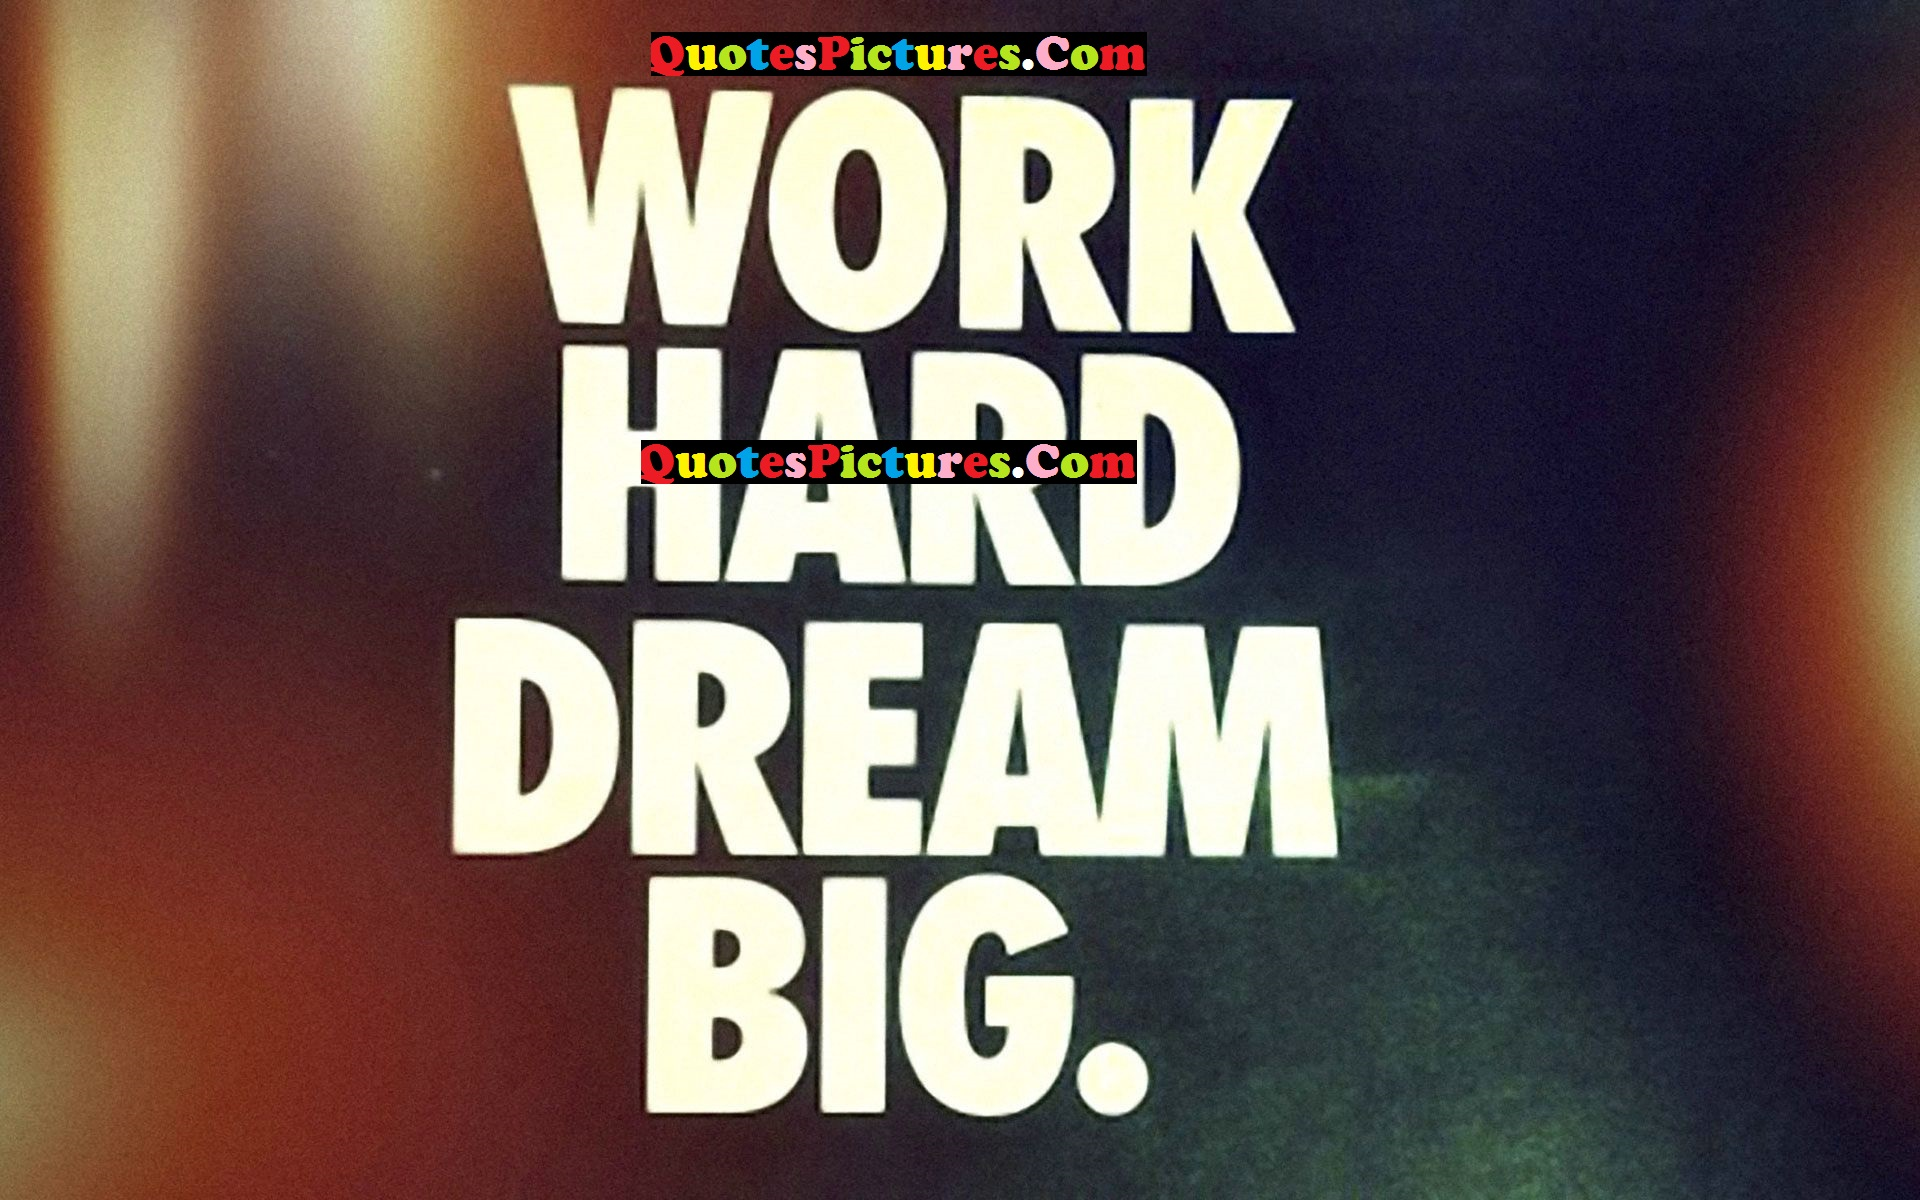 Great Life Quote - Work Hard Dream Big